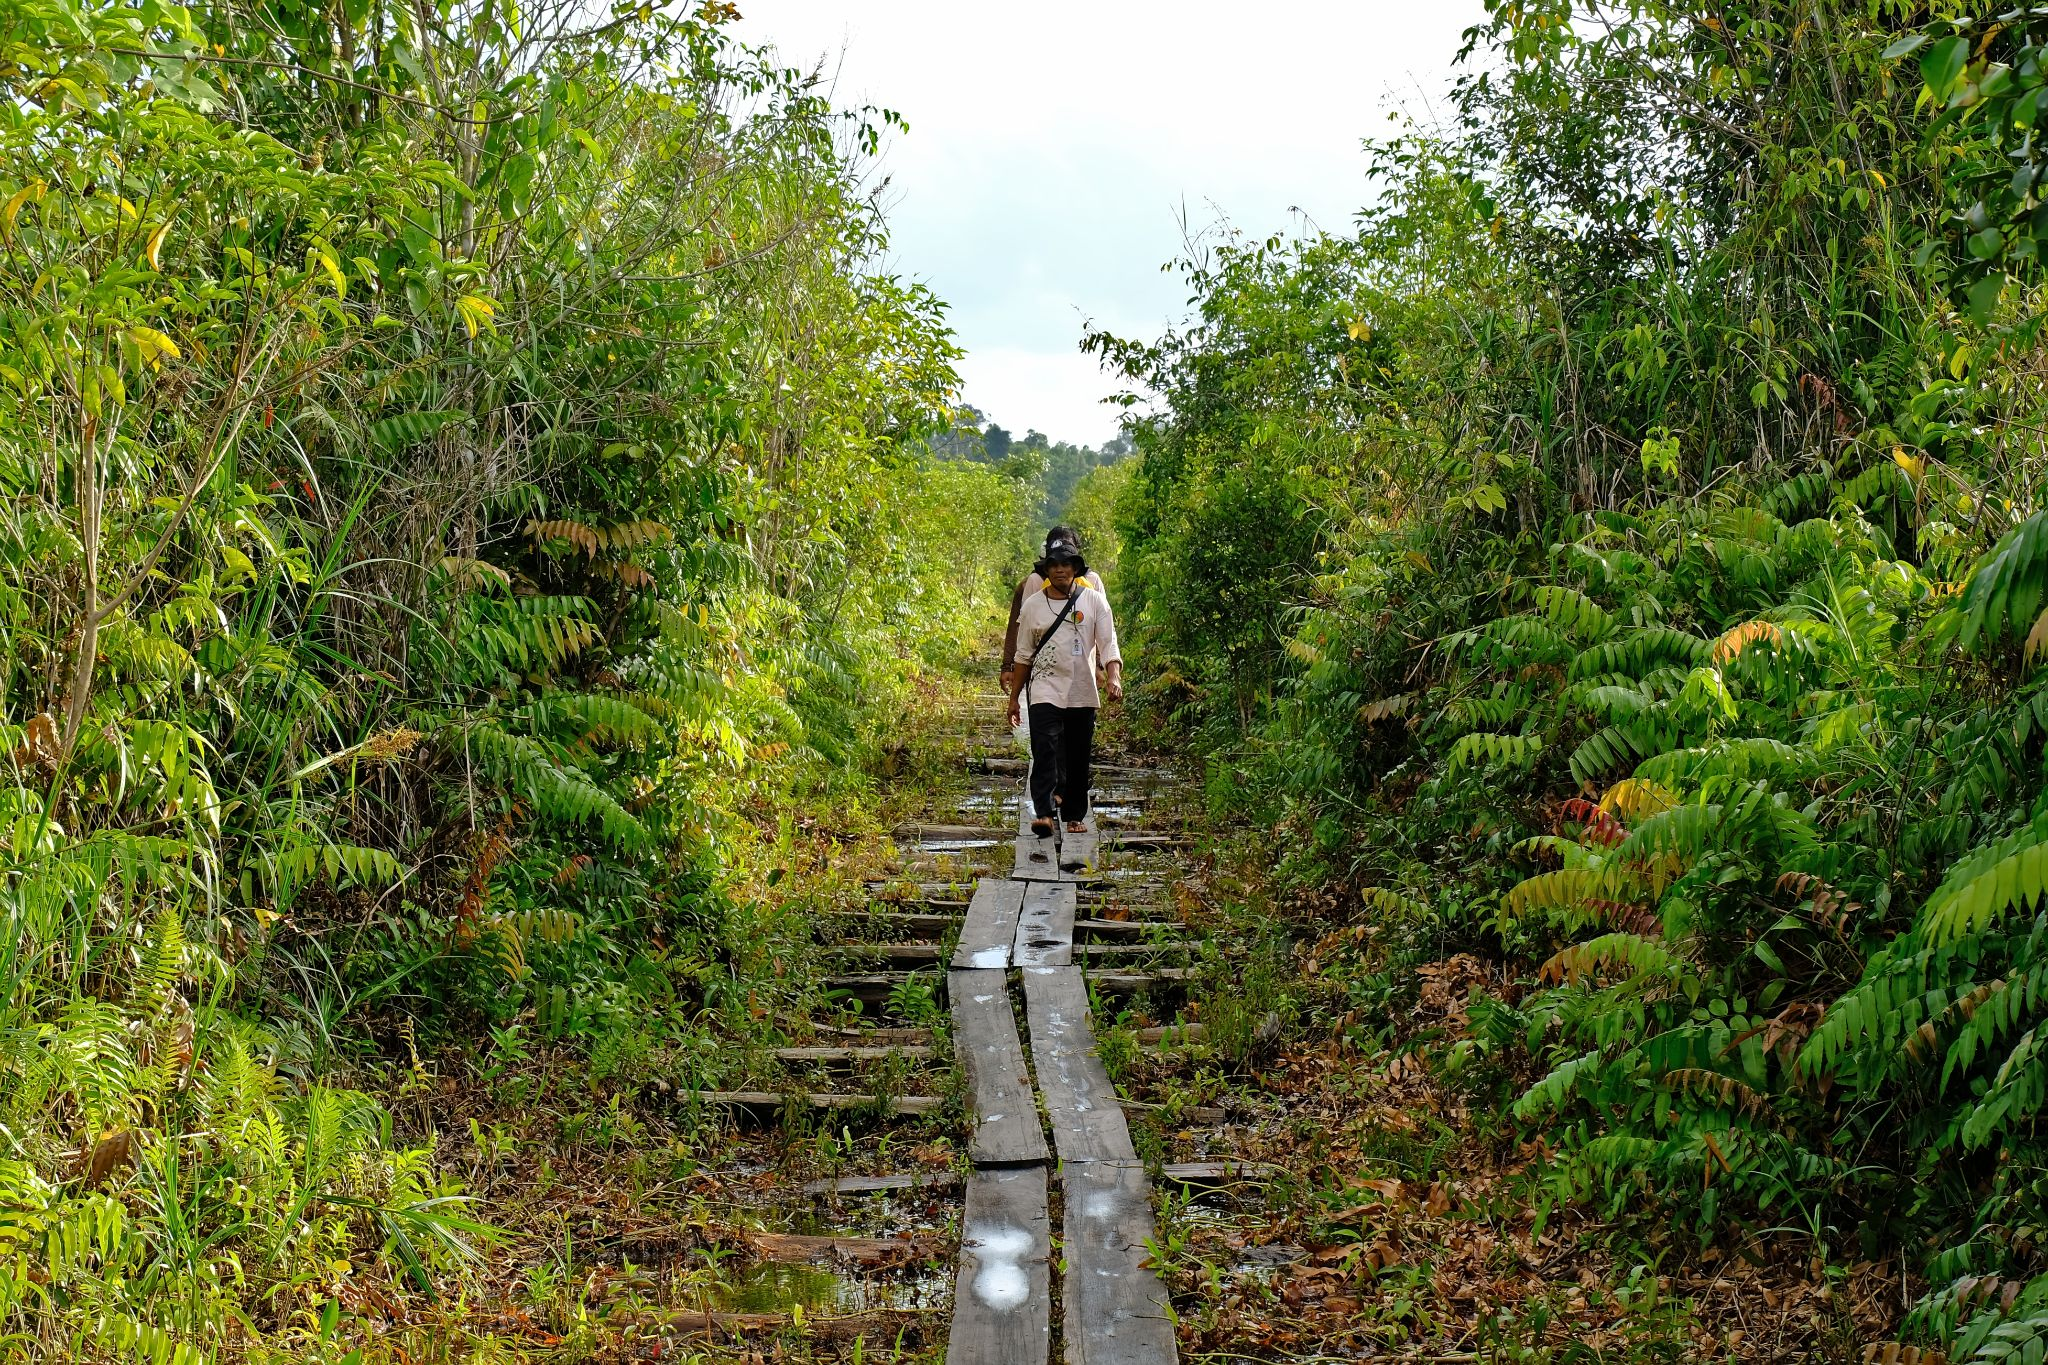 Two figures walk toward the camera down a wood-plank-lined path through a green, forest area.